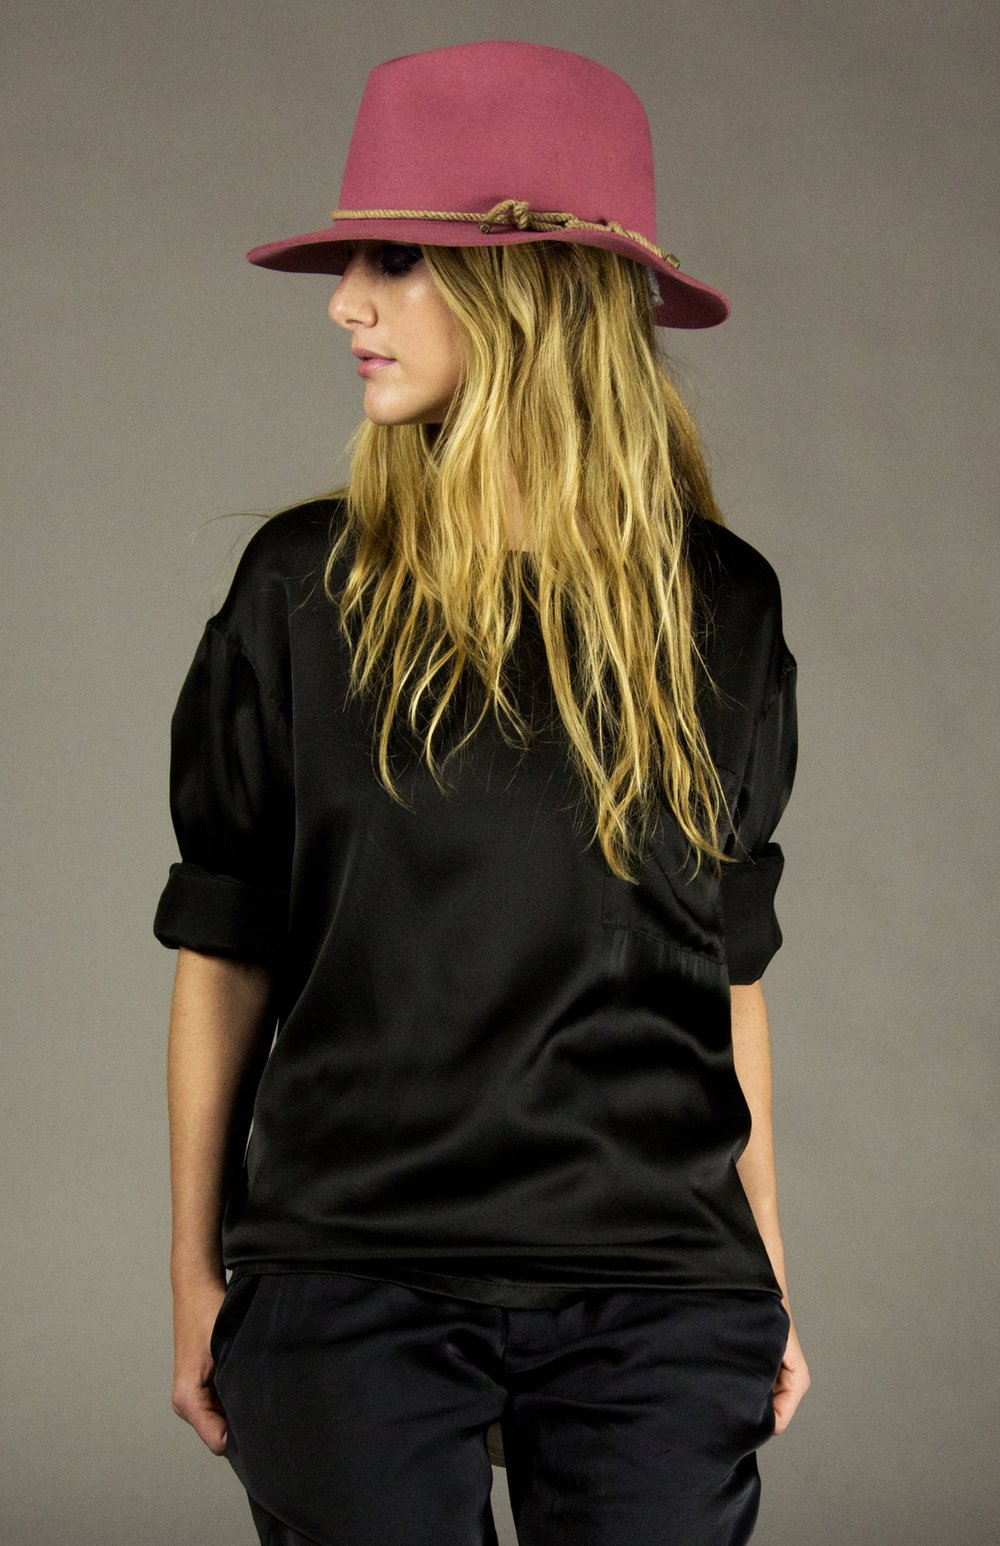 box top 1 black  silk slouch fit t-shirt with chest pocket.oversized crew neck. drop shoulder.full length sleeves.  sizes 0-1-2-3  100% washed silk charmuse